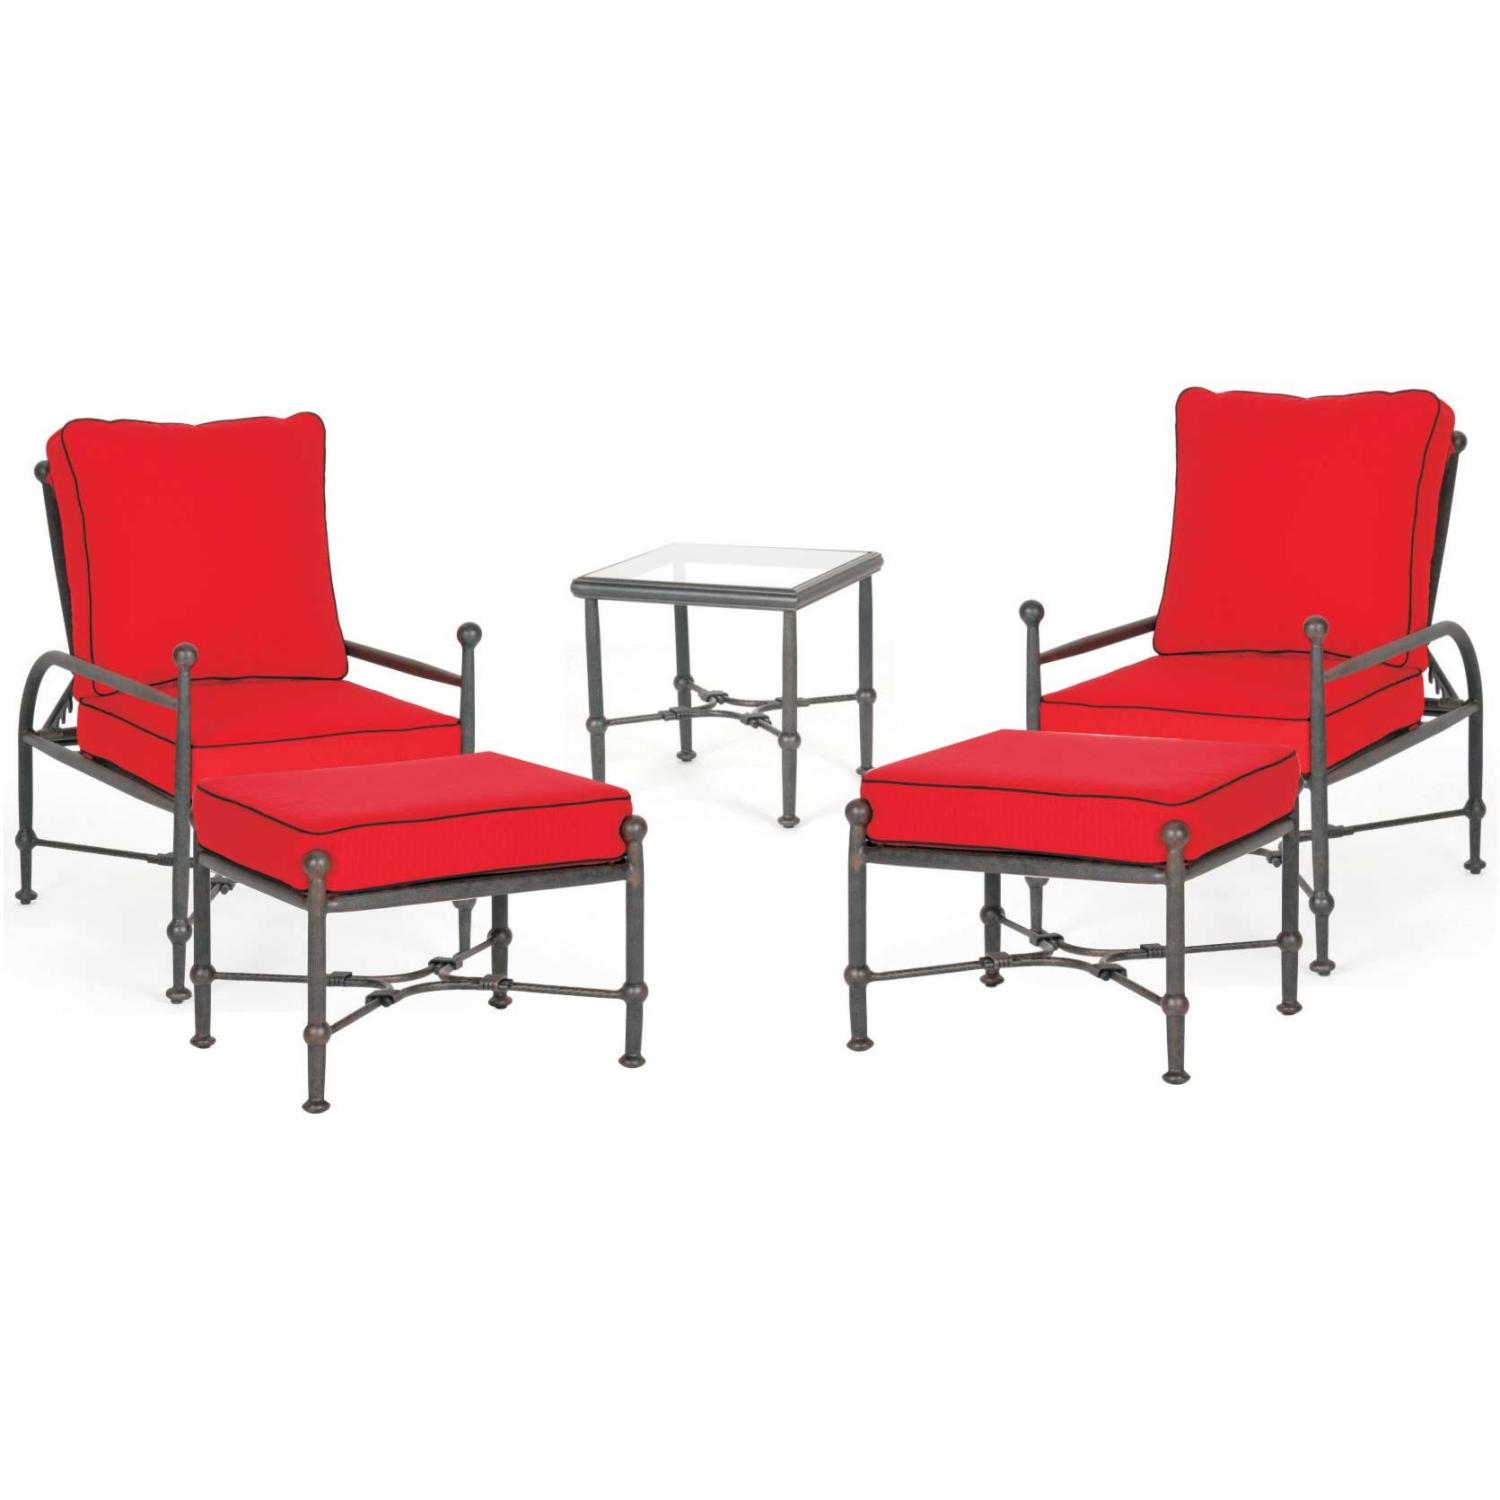 Caluco Origin Aluminum Adjustable Chair Lounge Set With Ottomans